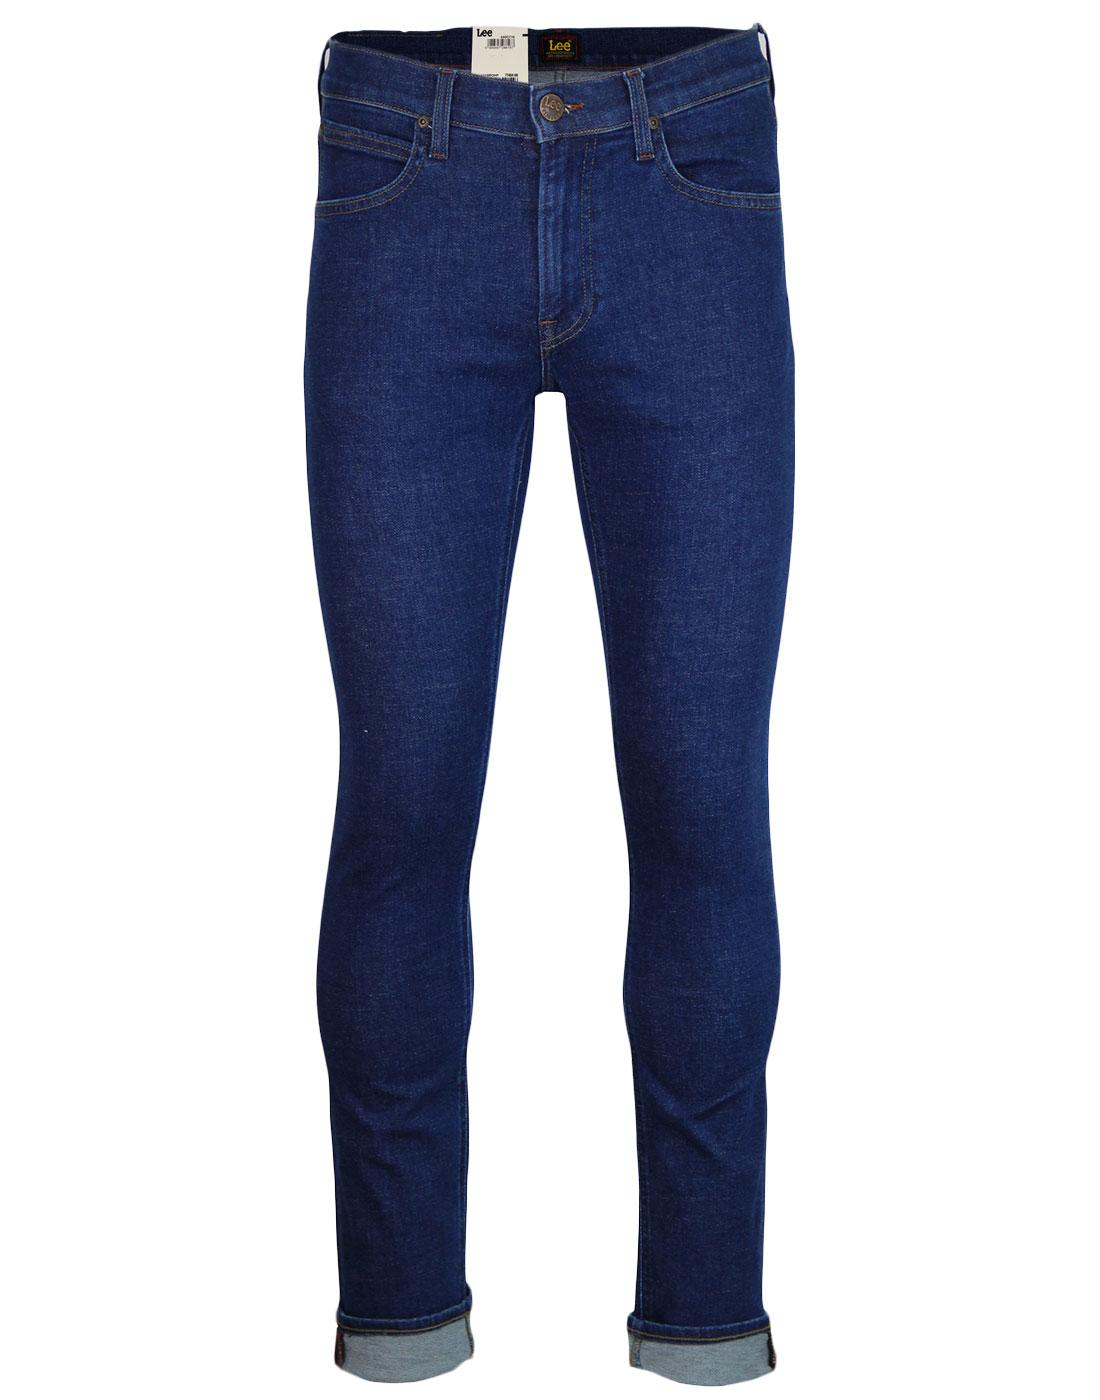 Luke LEE Slim Tapered Retro Mod Denim Jeans YOYO